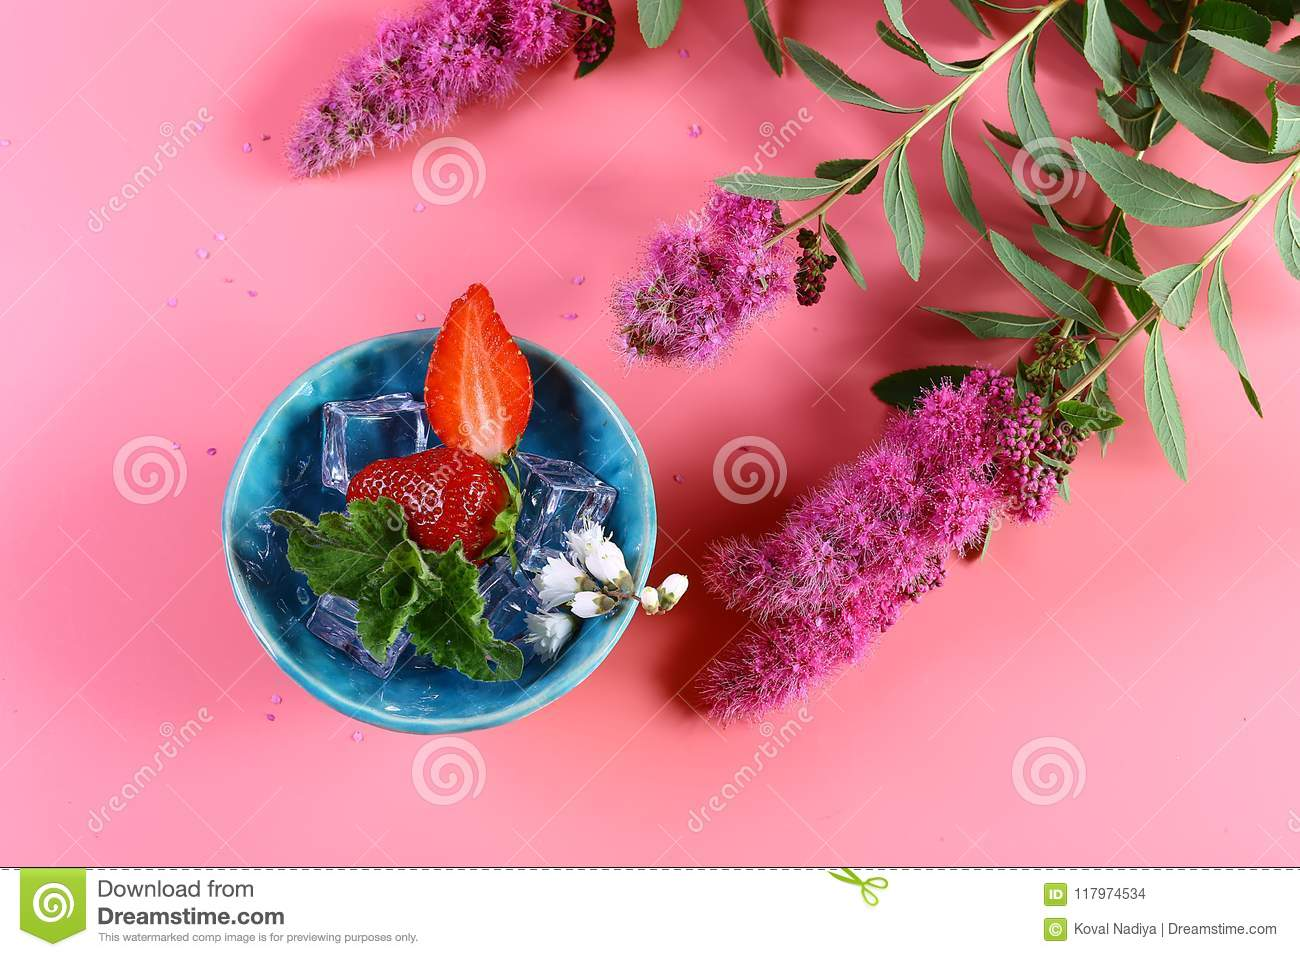 Fresh cut strawberries in a blue plate with ice mint pink flowers download comp mightylinksfo